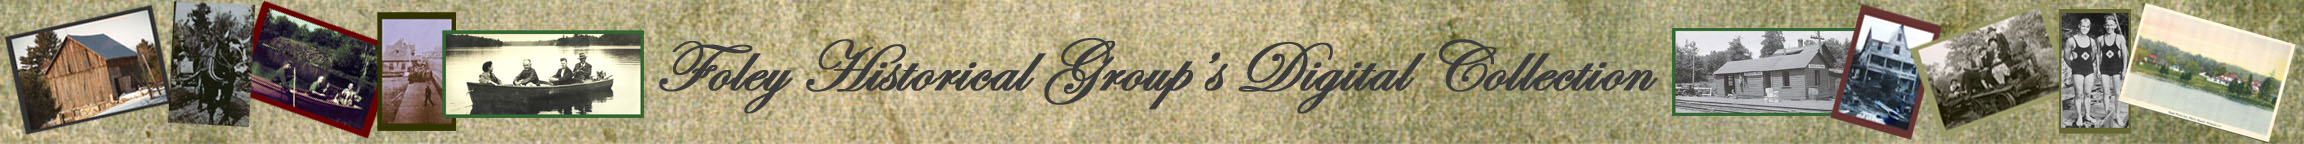 Foley Historical Group's Digital Collection